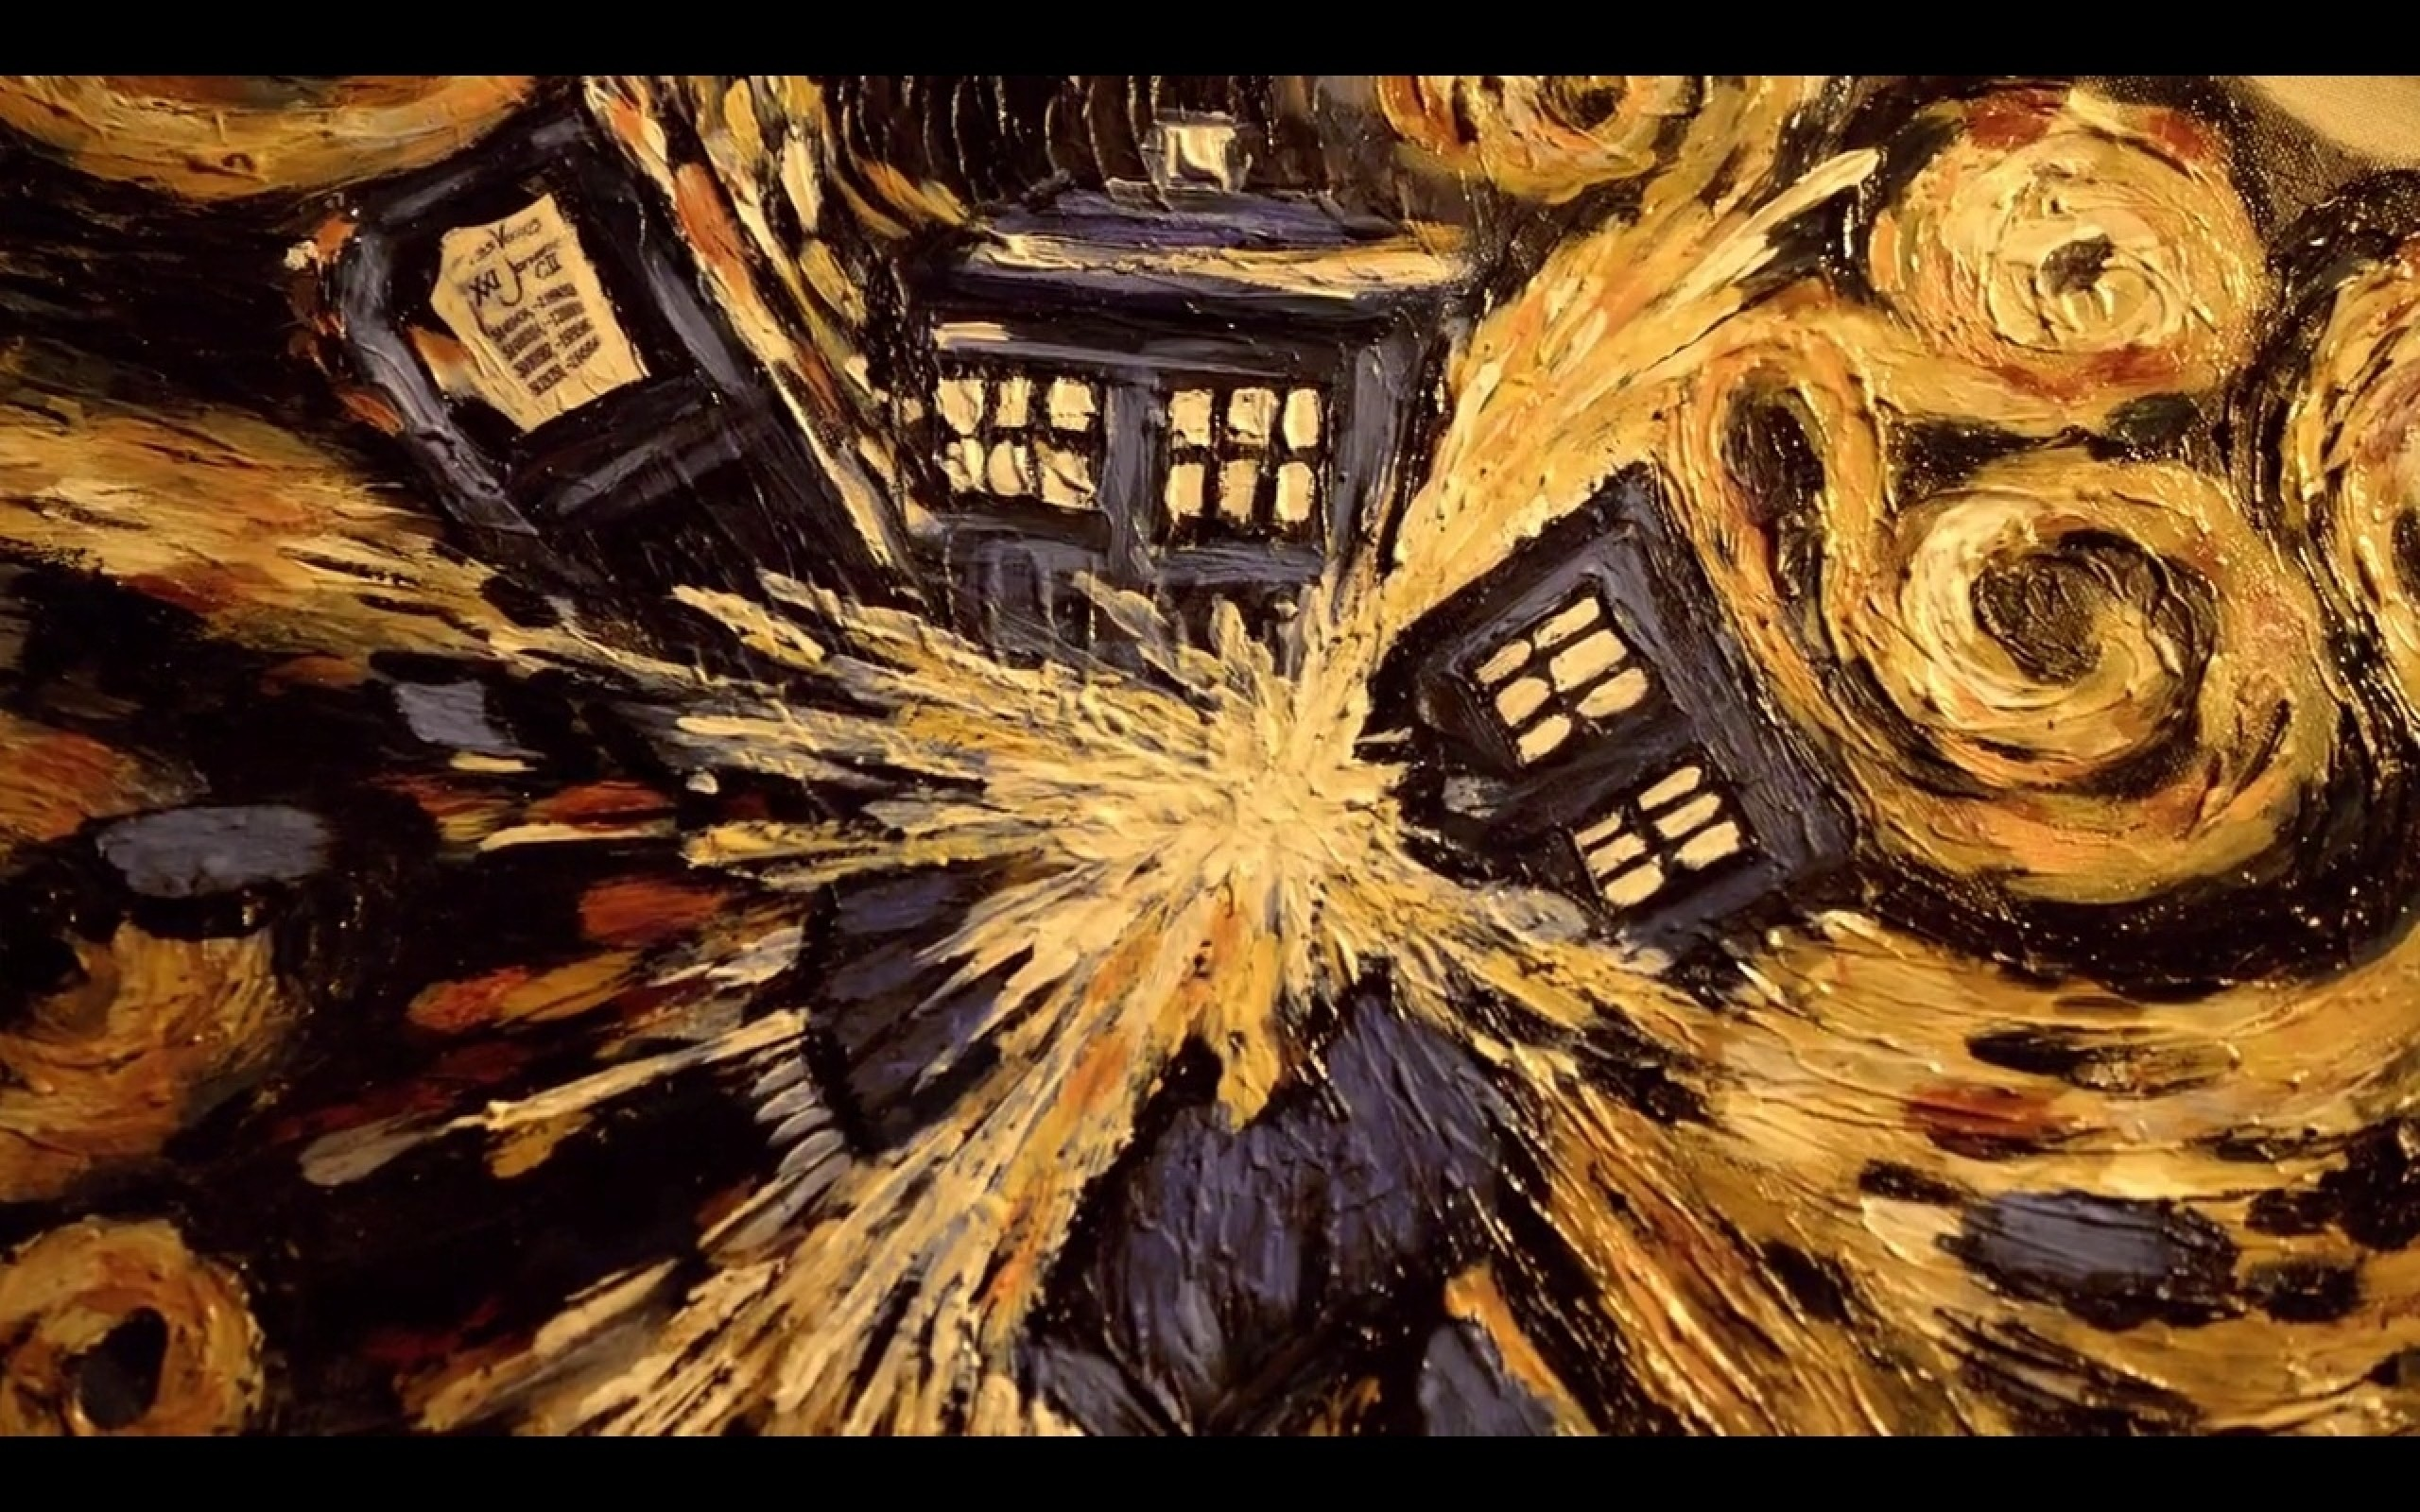 Tardis Wallpaper Iphone 6 Vincent Van Gogh Wallpapers 59 Images